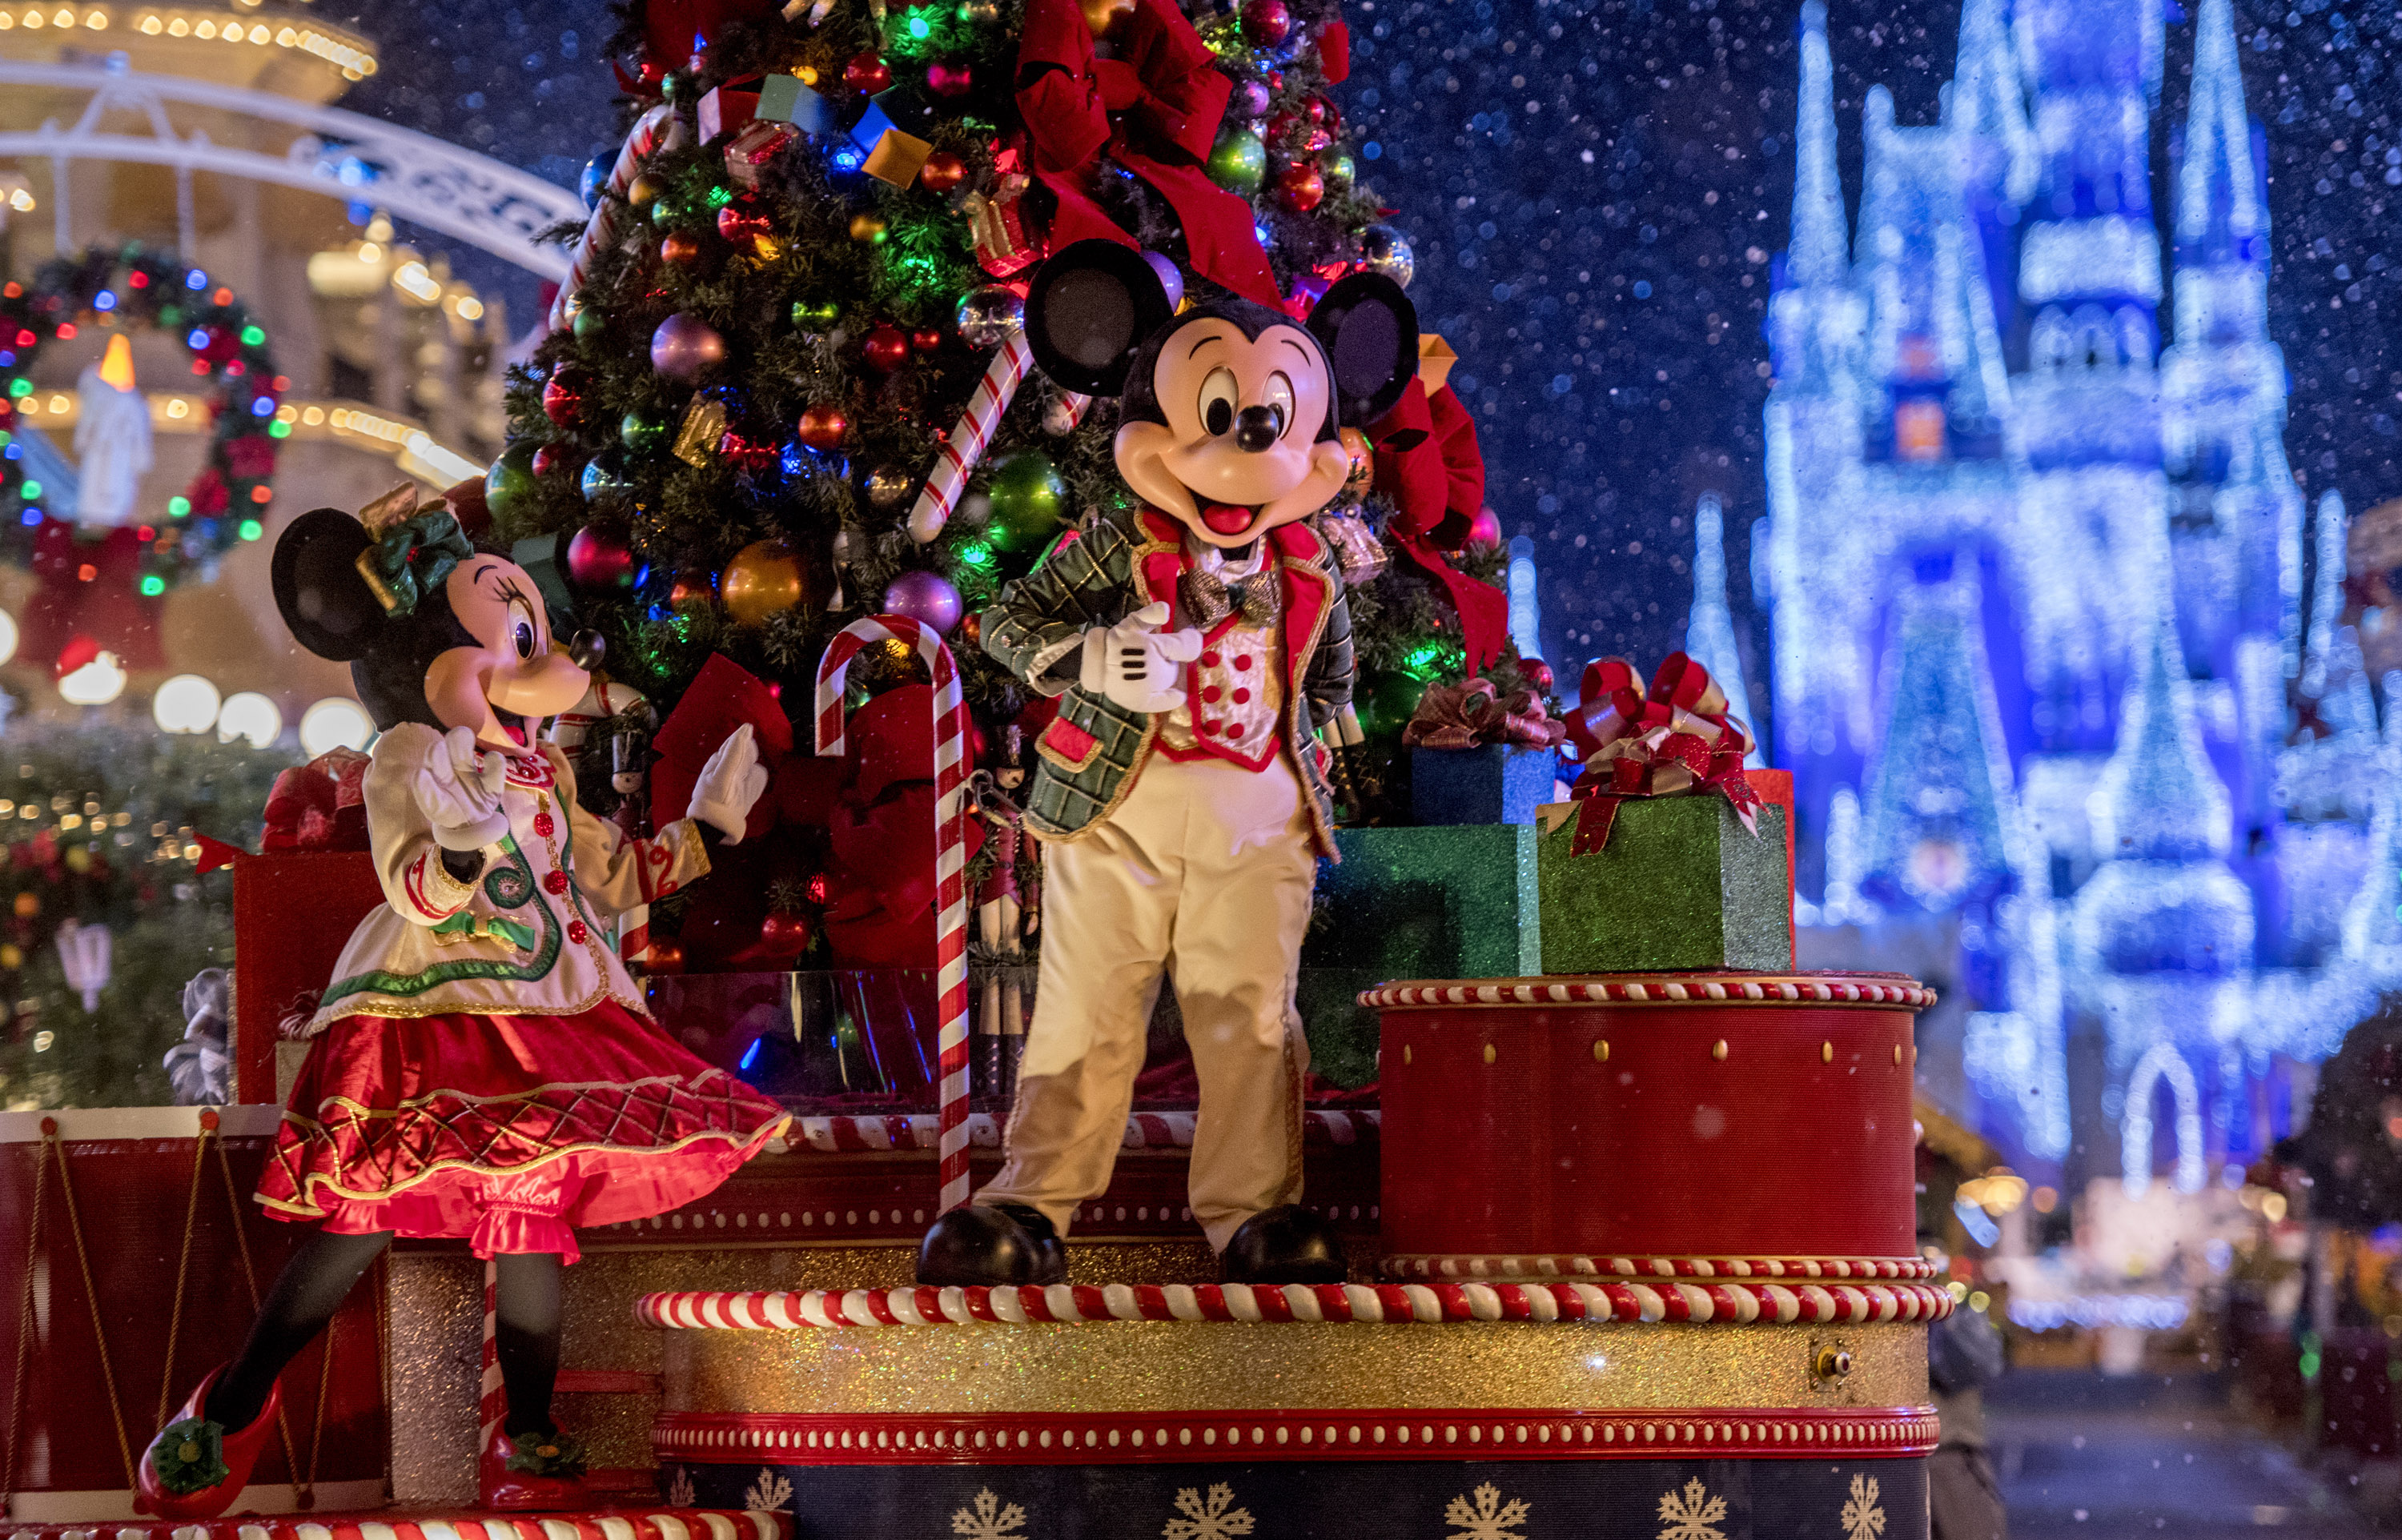 Mickey's Very Merry Christmas Party at Walt Disney World's Magic Kingdom is a festive way to get into the holiday spirit. Check out our 8 favorites from the 2017 event.